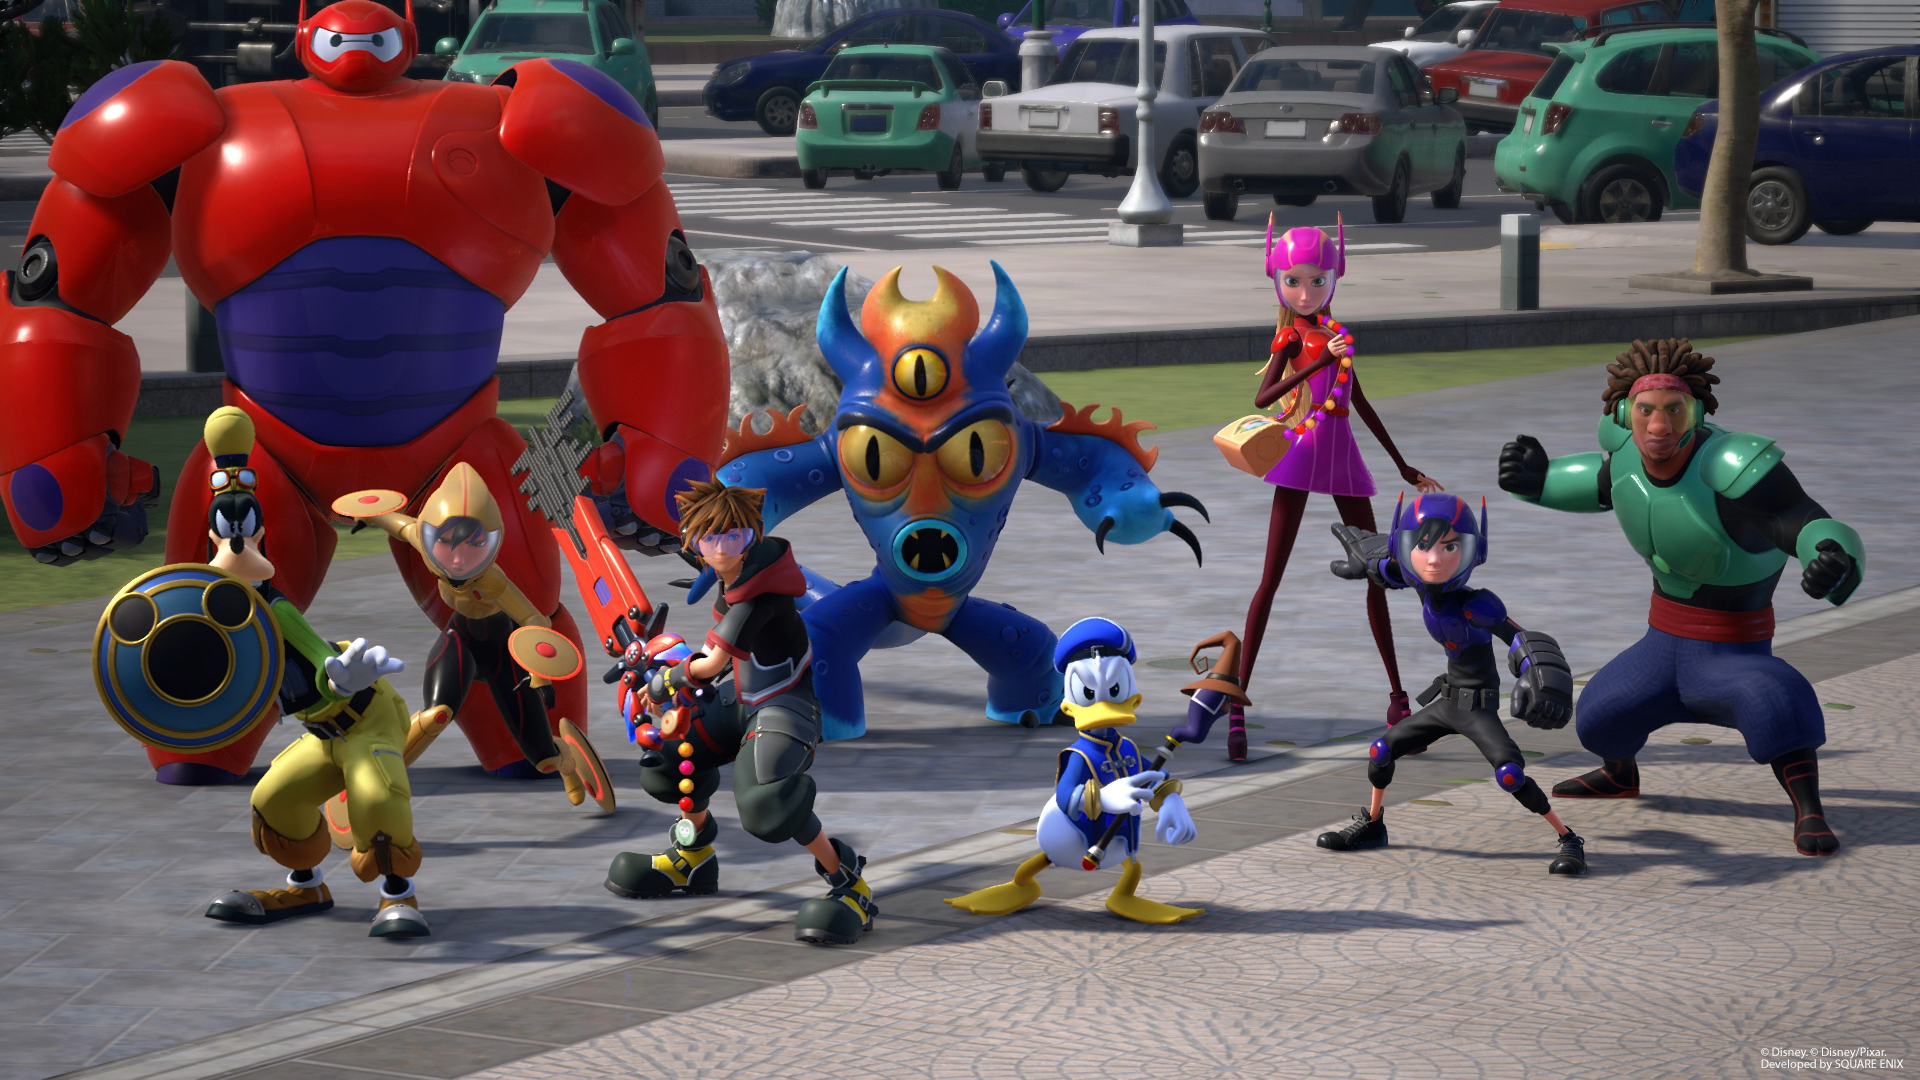 Review_KingdomHearts3_01